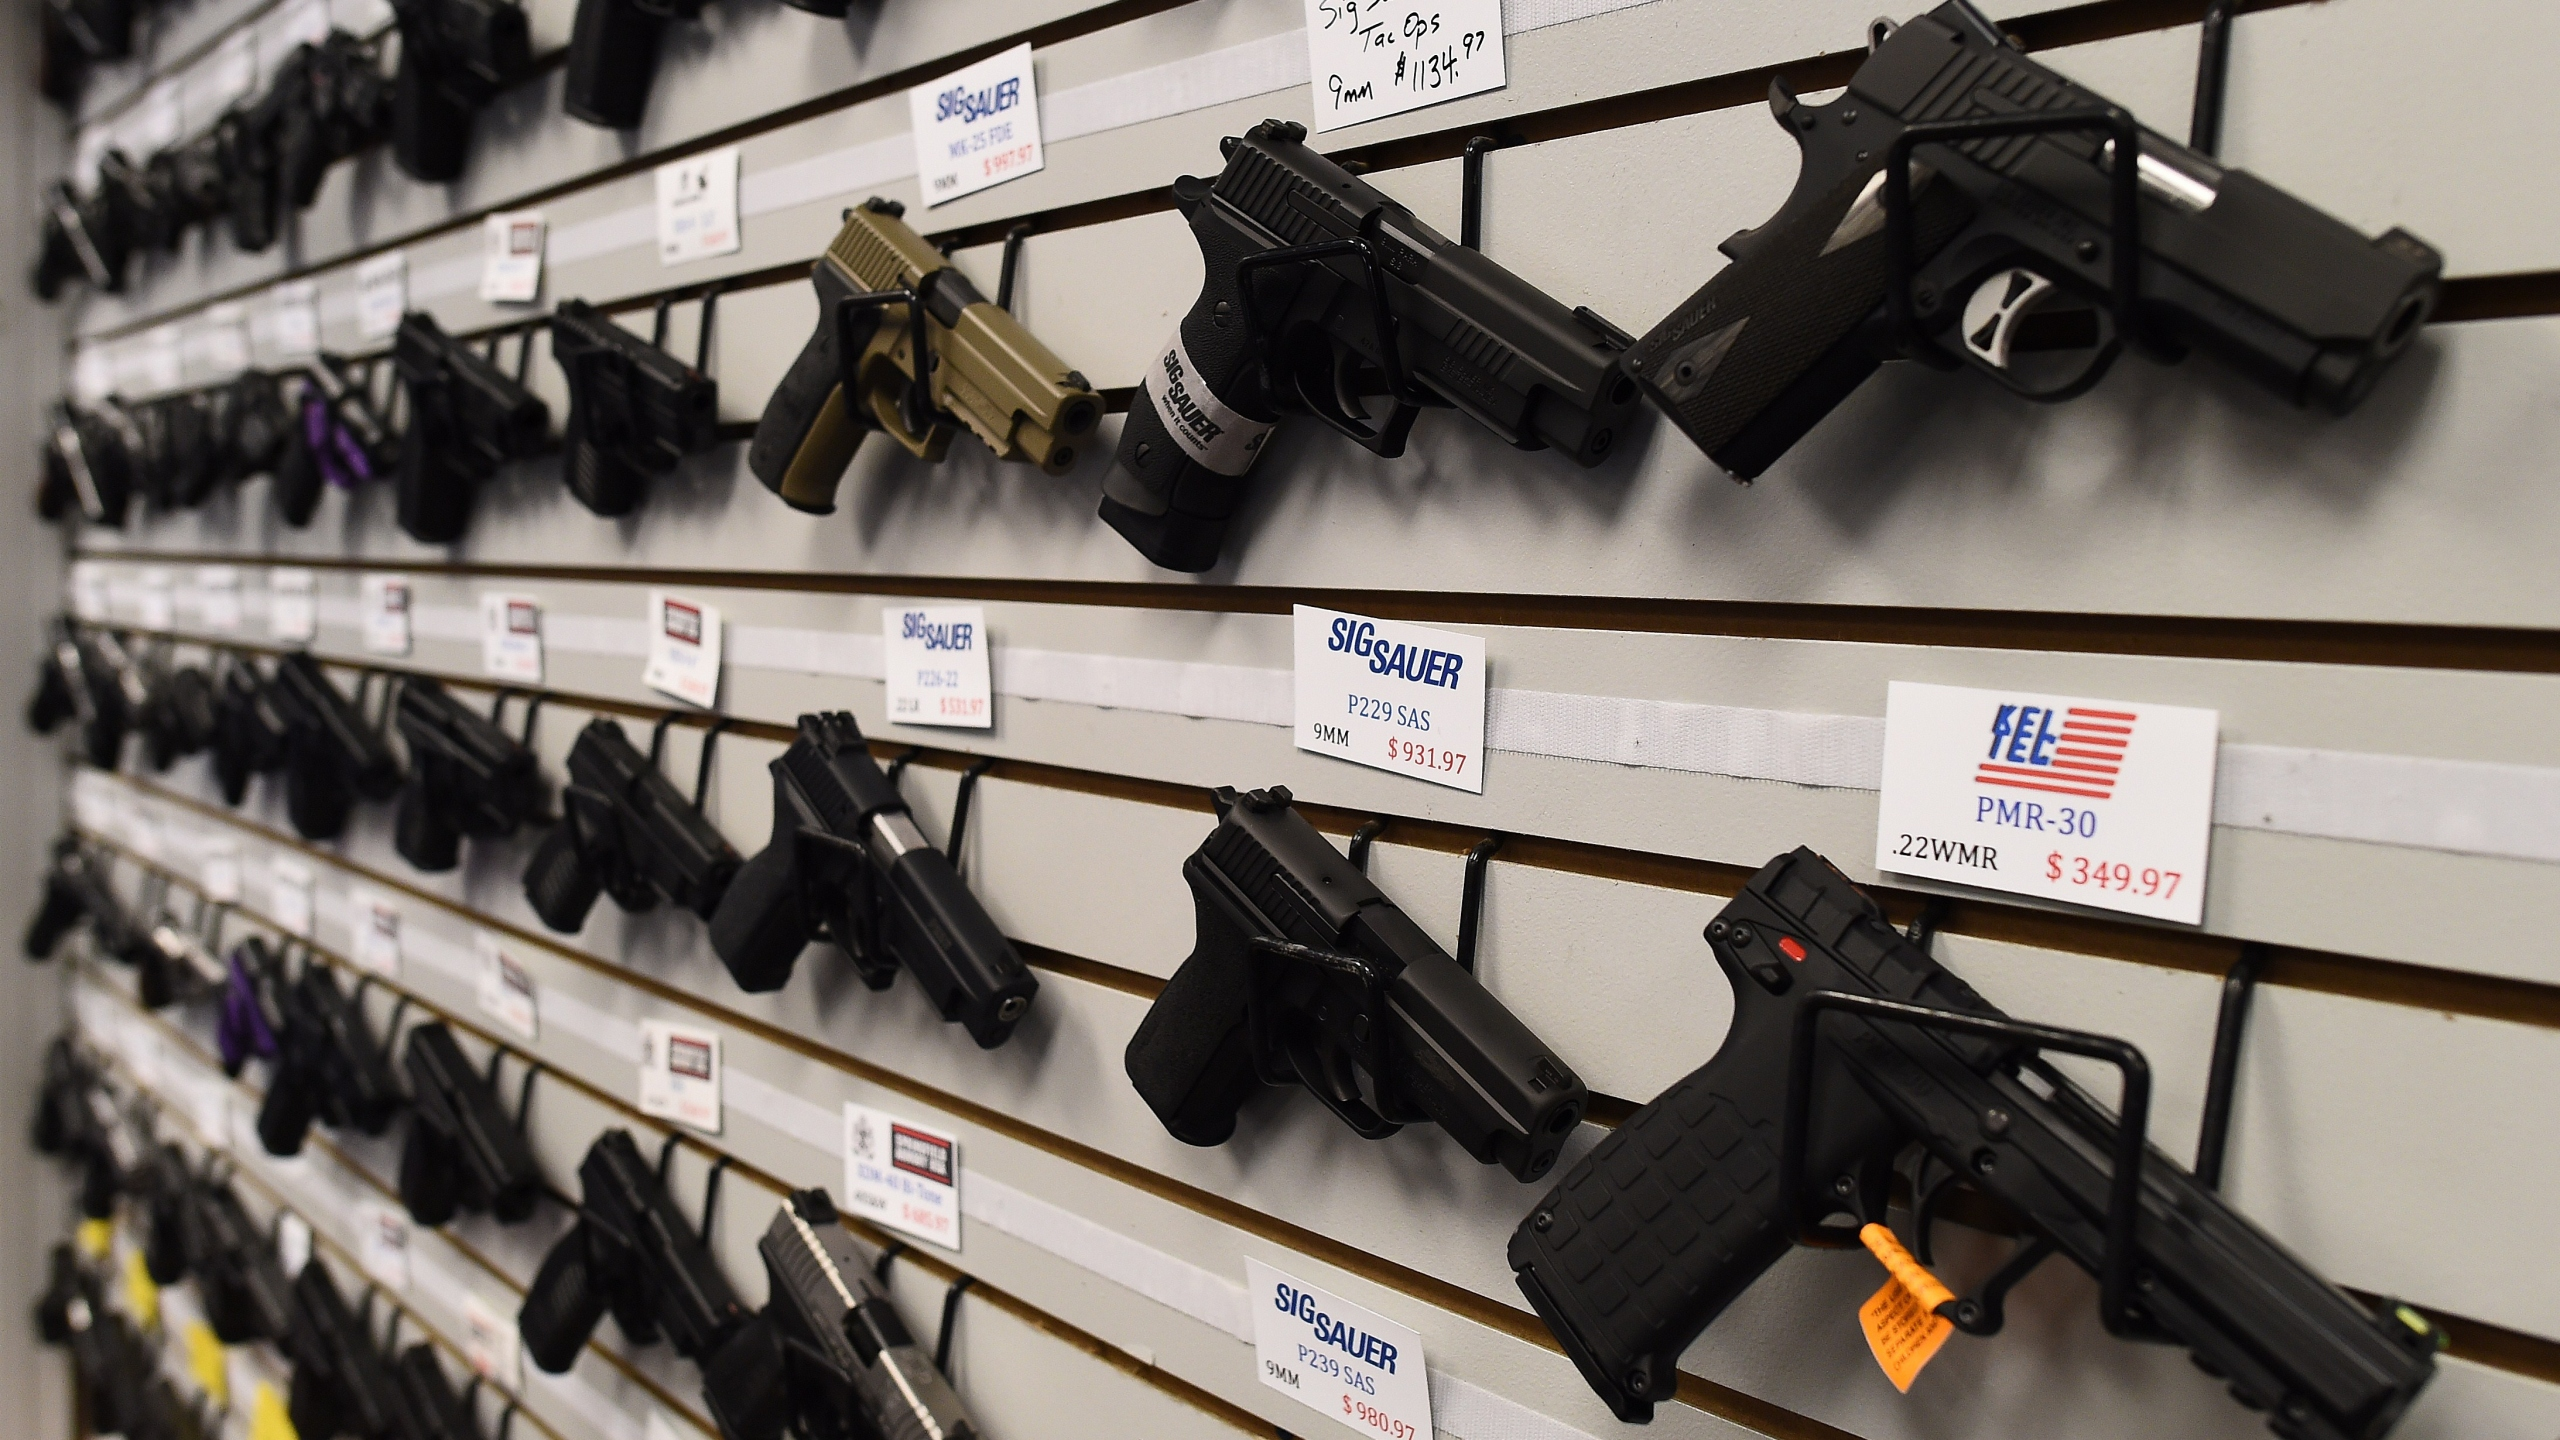 Handguns are displayed at the Ultimate Defense Firing Range and Training Center in St. Peters, Missouri, in November 2014. (JEWEL SAMAD/AFP/Getty Images)